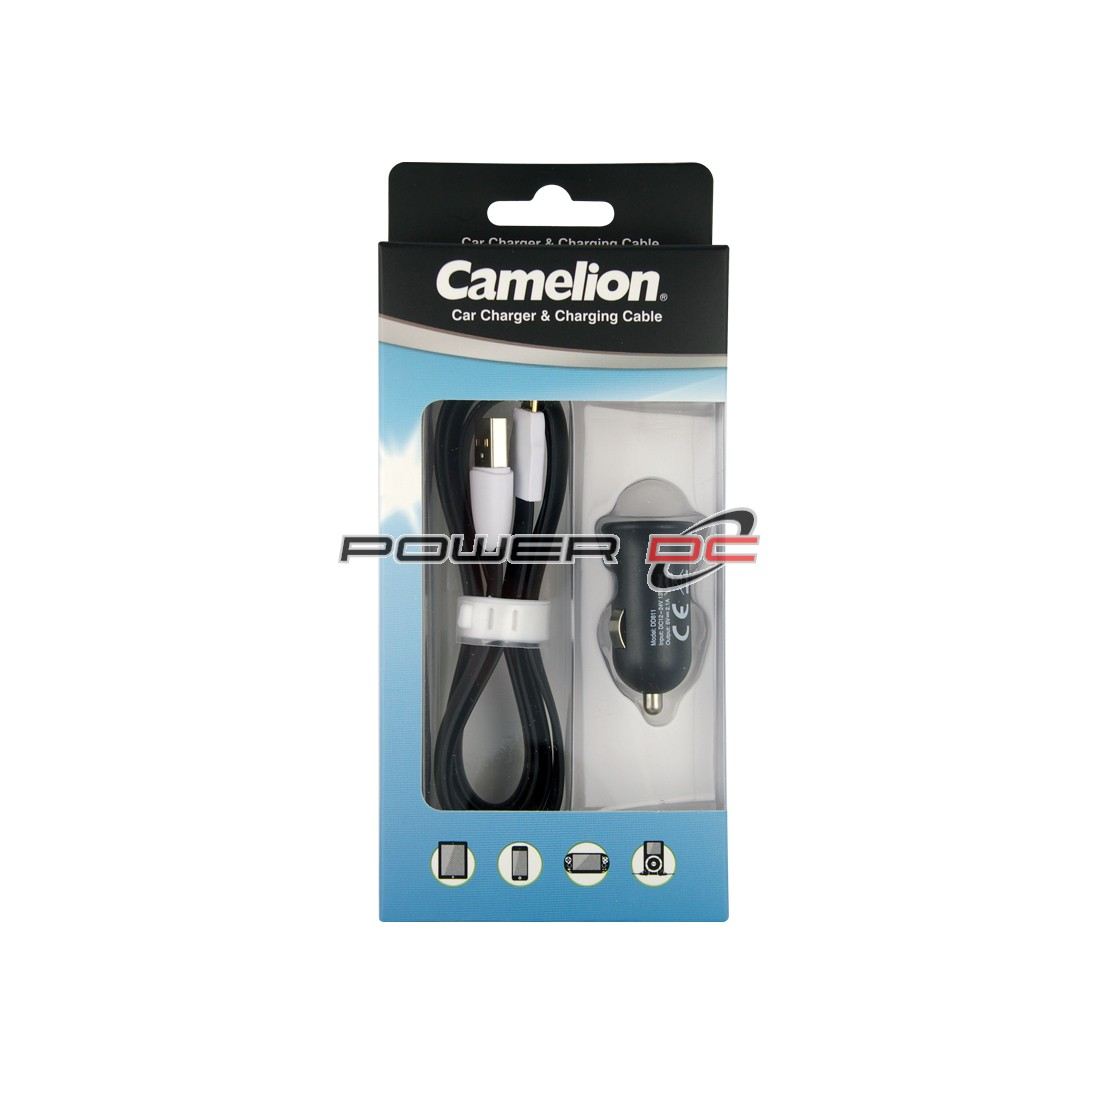 CAMELION USB MINI CAR CHARGER 2,100 MAH + MICRO USB CABLE